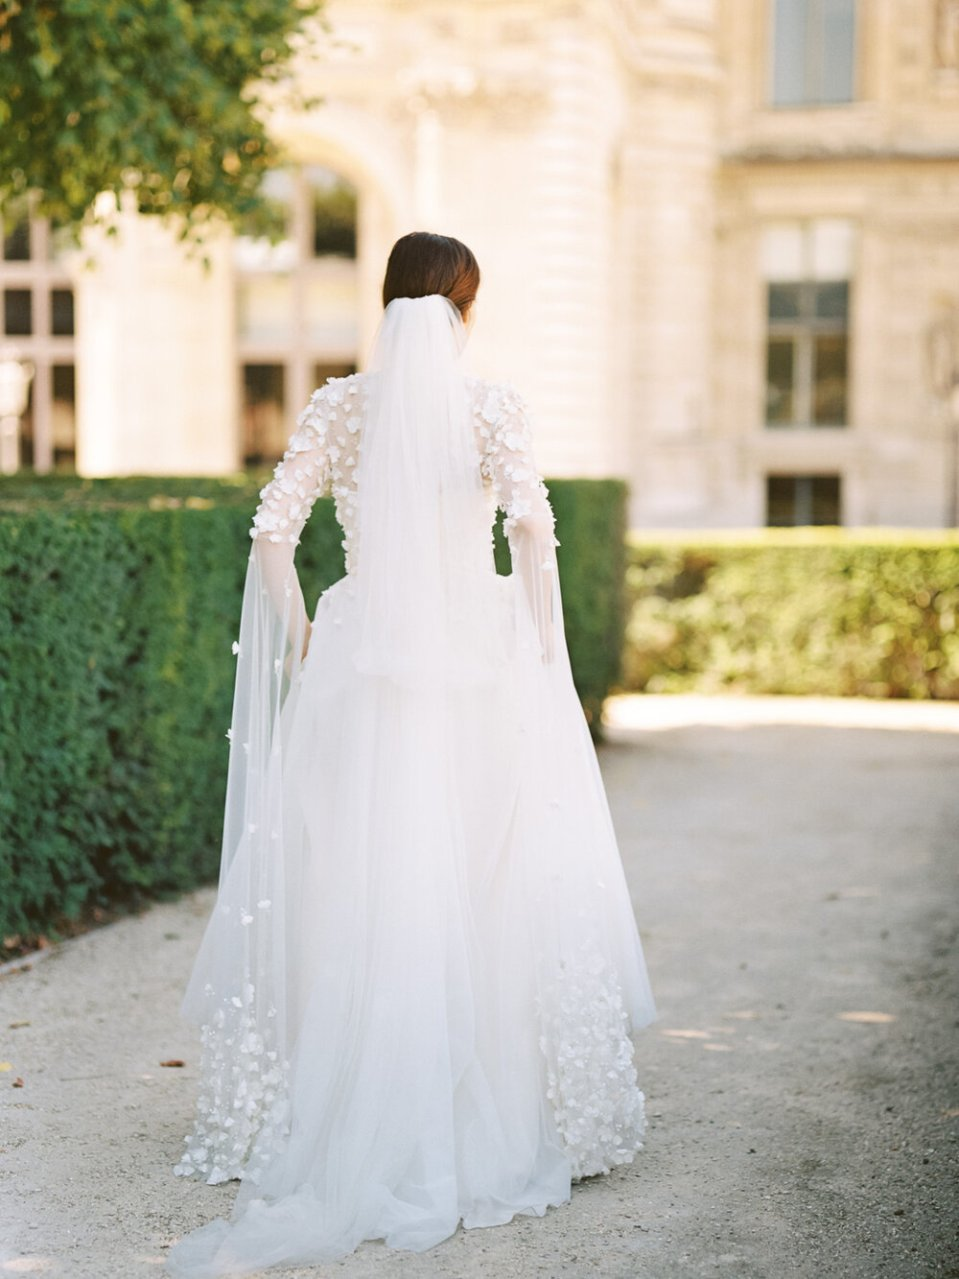 Destination Fine Art Wedding Editorial Photography in Paris with Max Chaoul-60.jpg